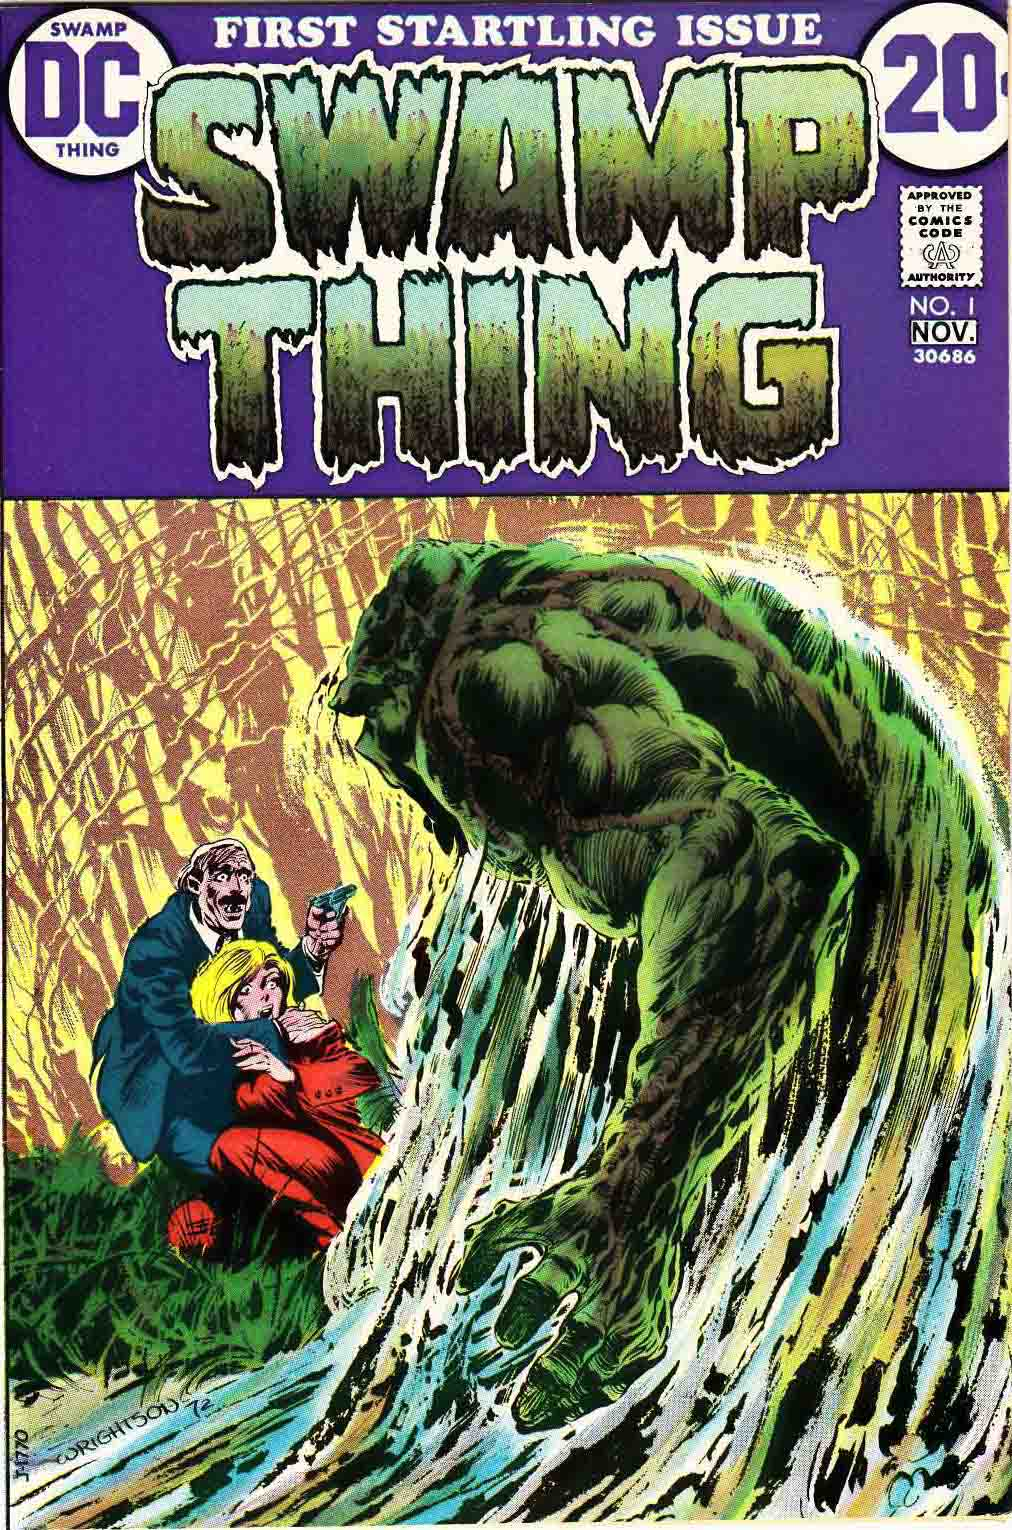 Swamp Thing (Wein/Wrightson)